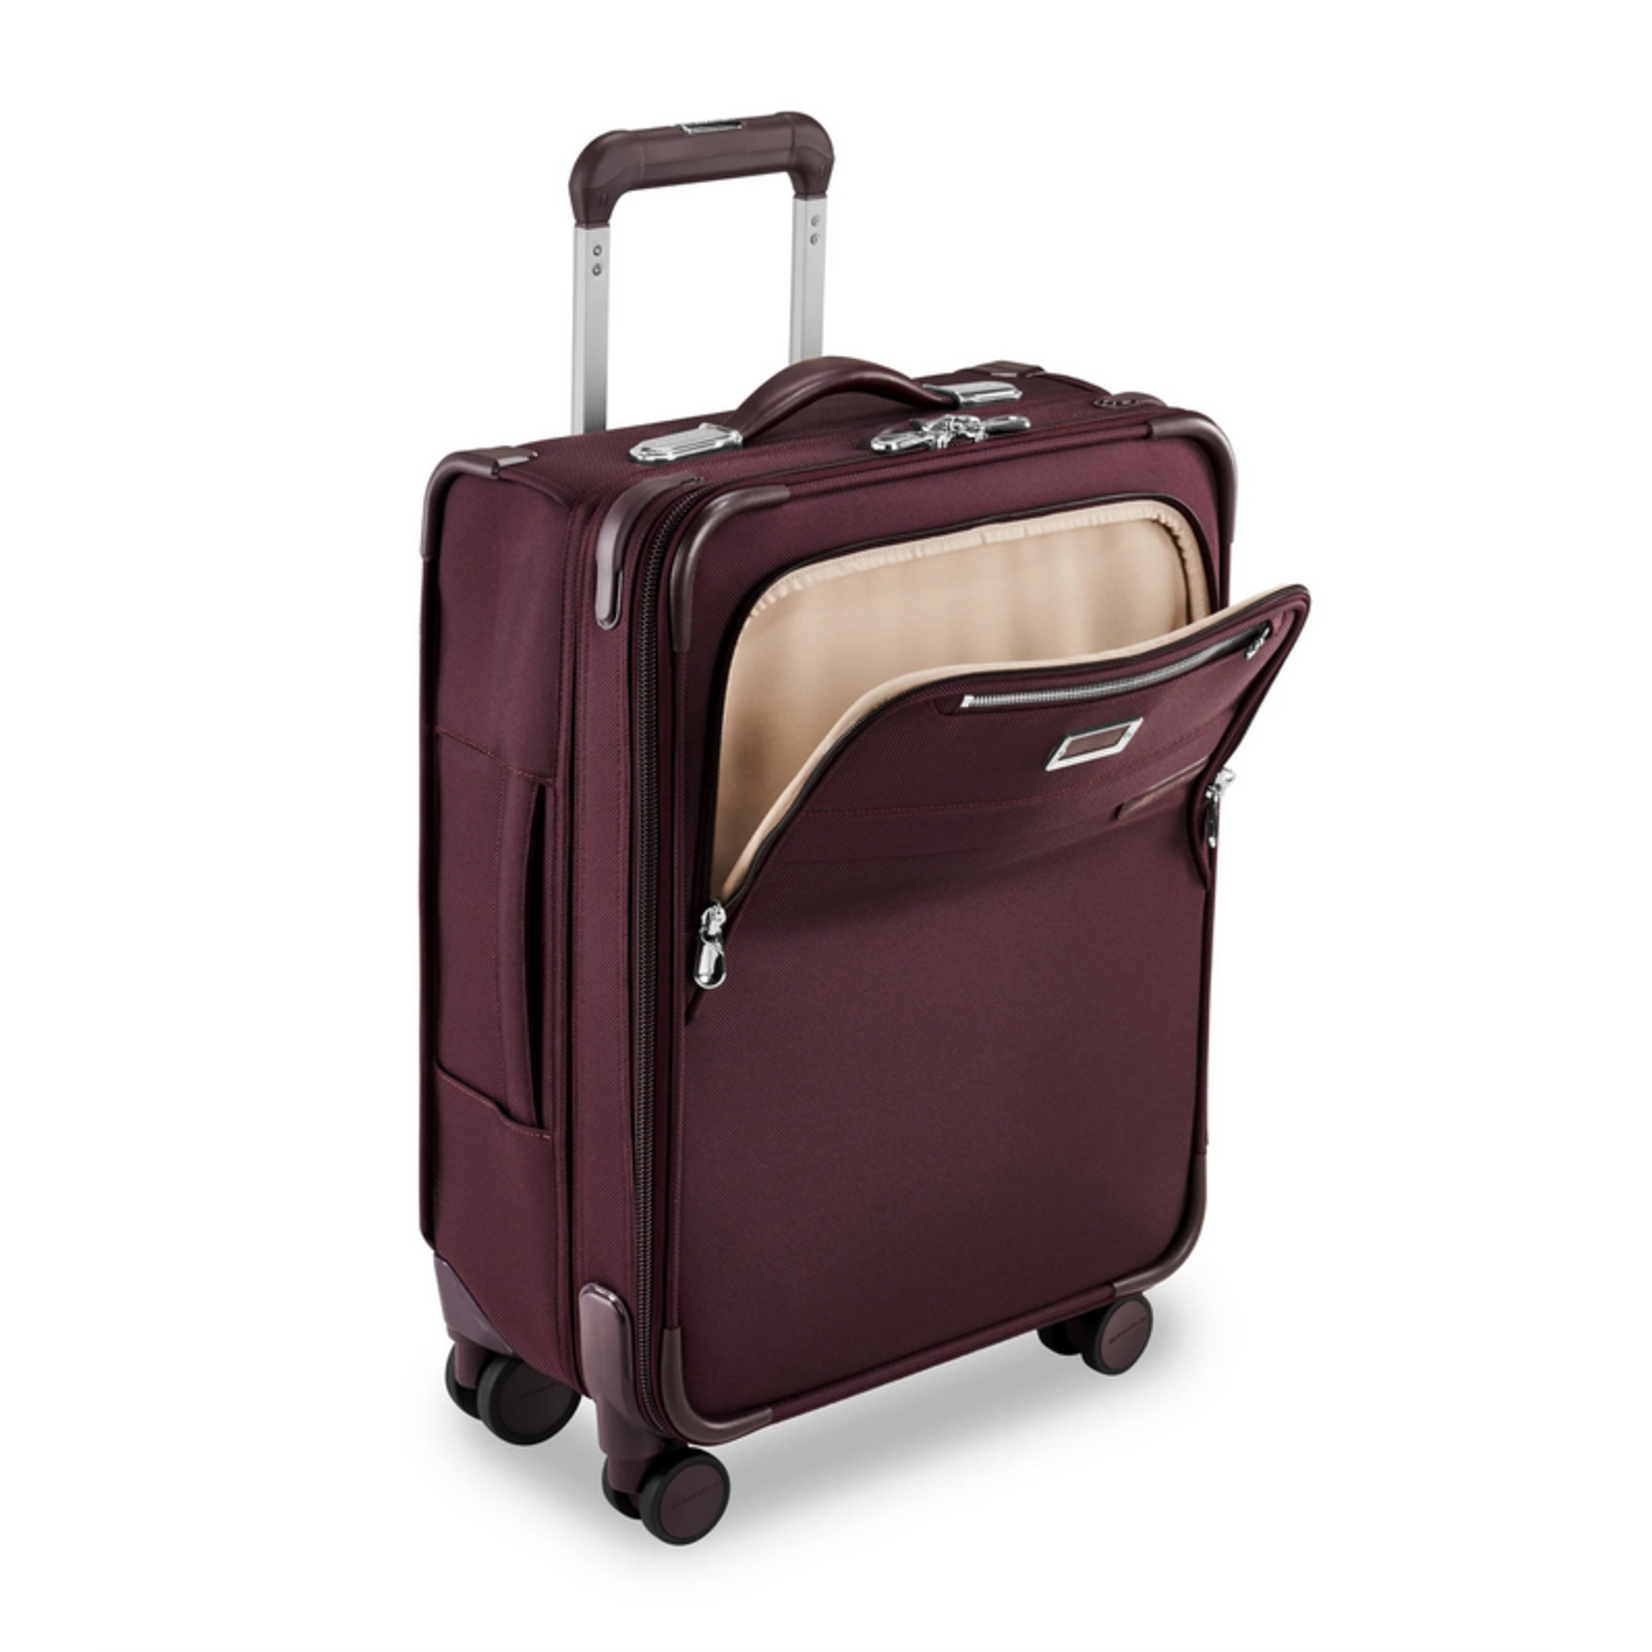 BRIGGS & RILEY BASELINE INTL CARRY-ON EXP WB SPINNER Plum